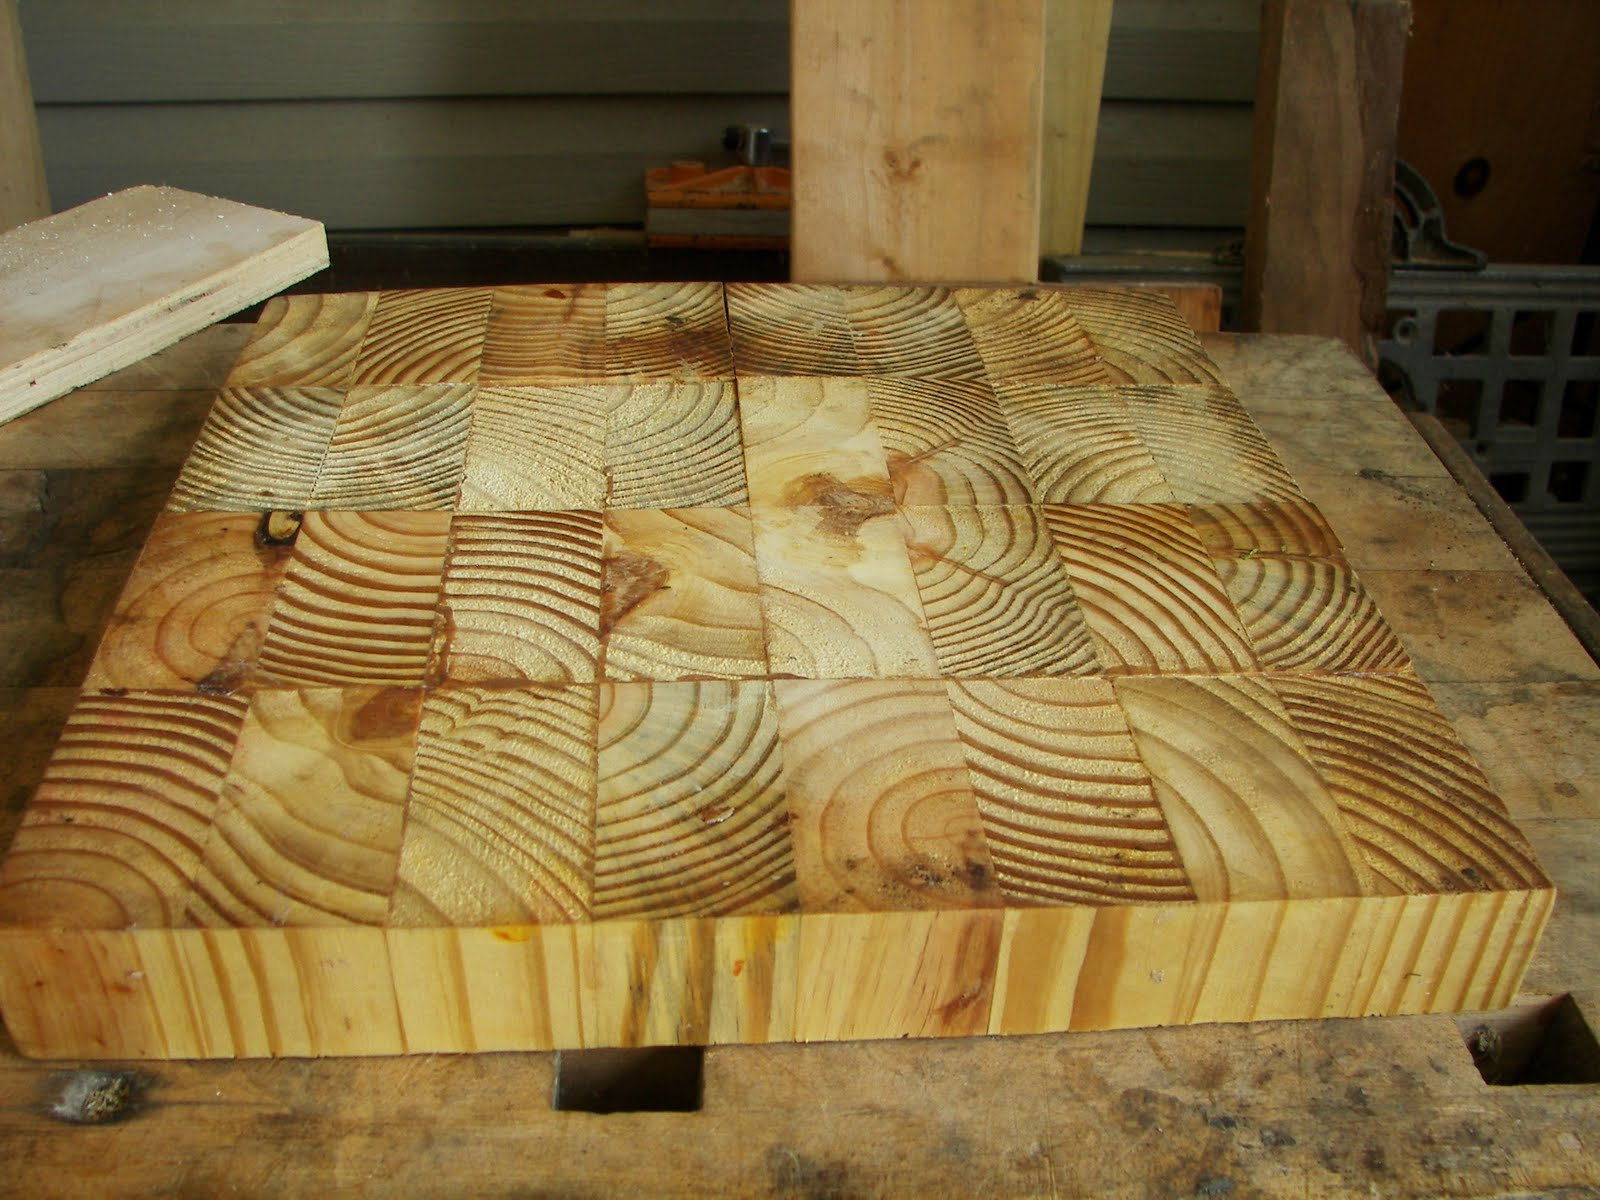 Sleepydog S Wood Shop Surfacing End Grain Cutting Broards